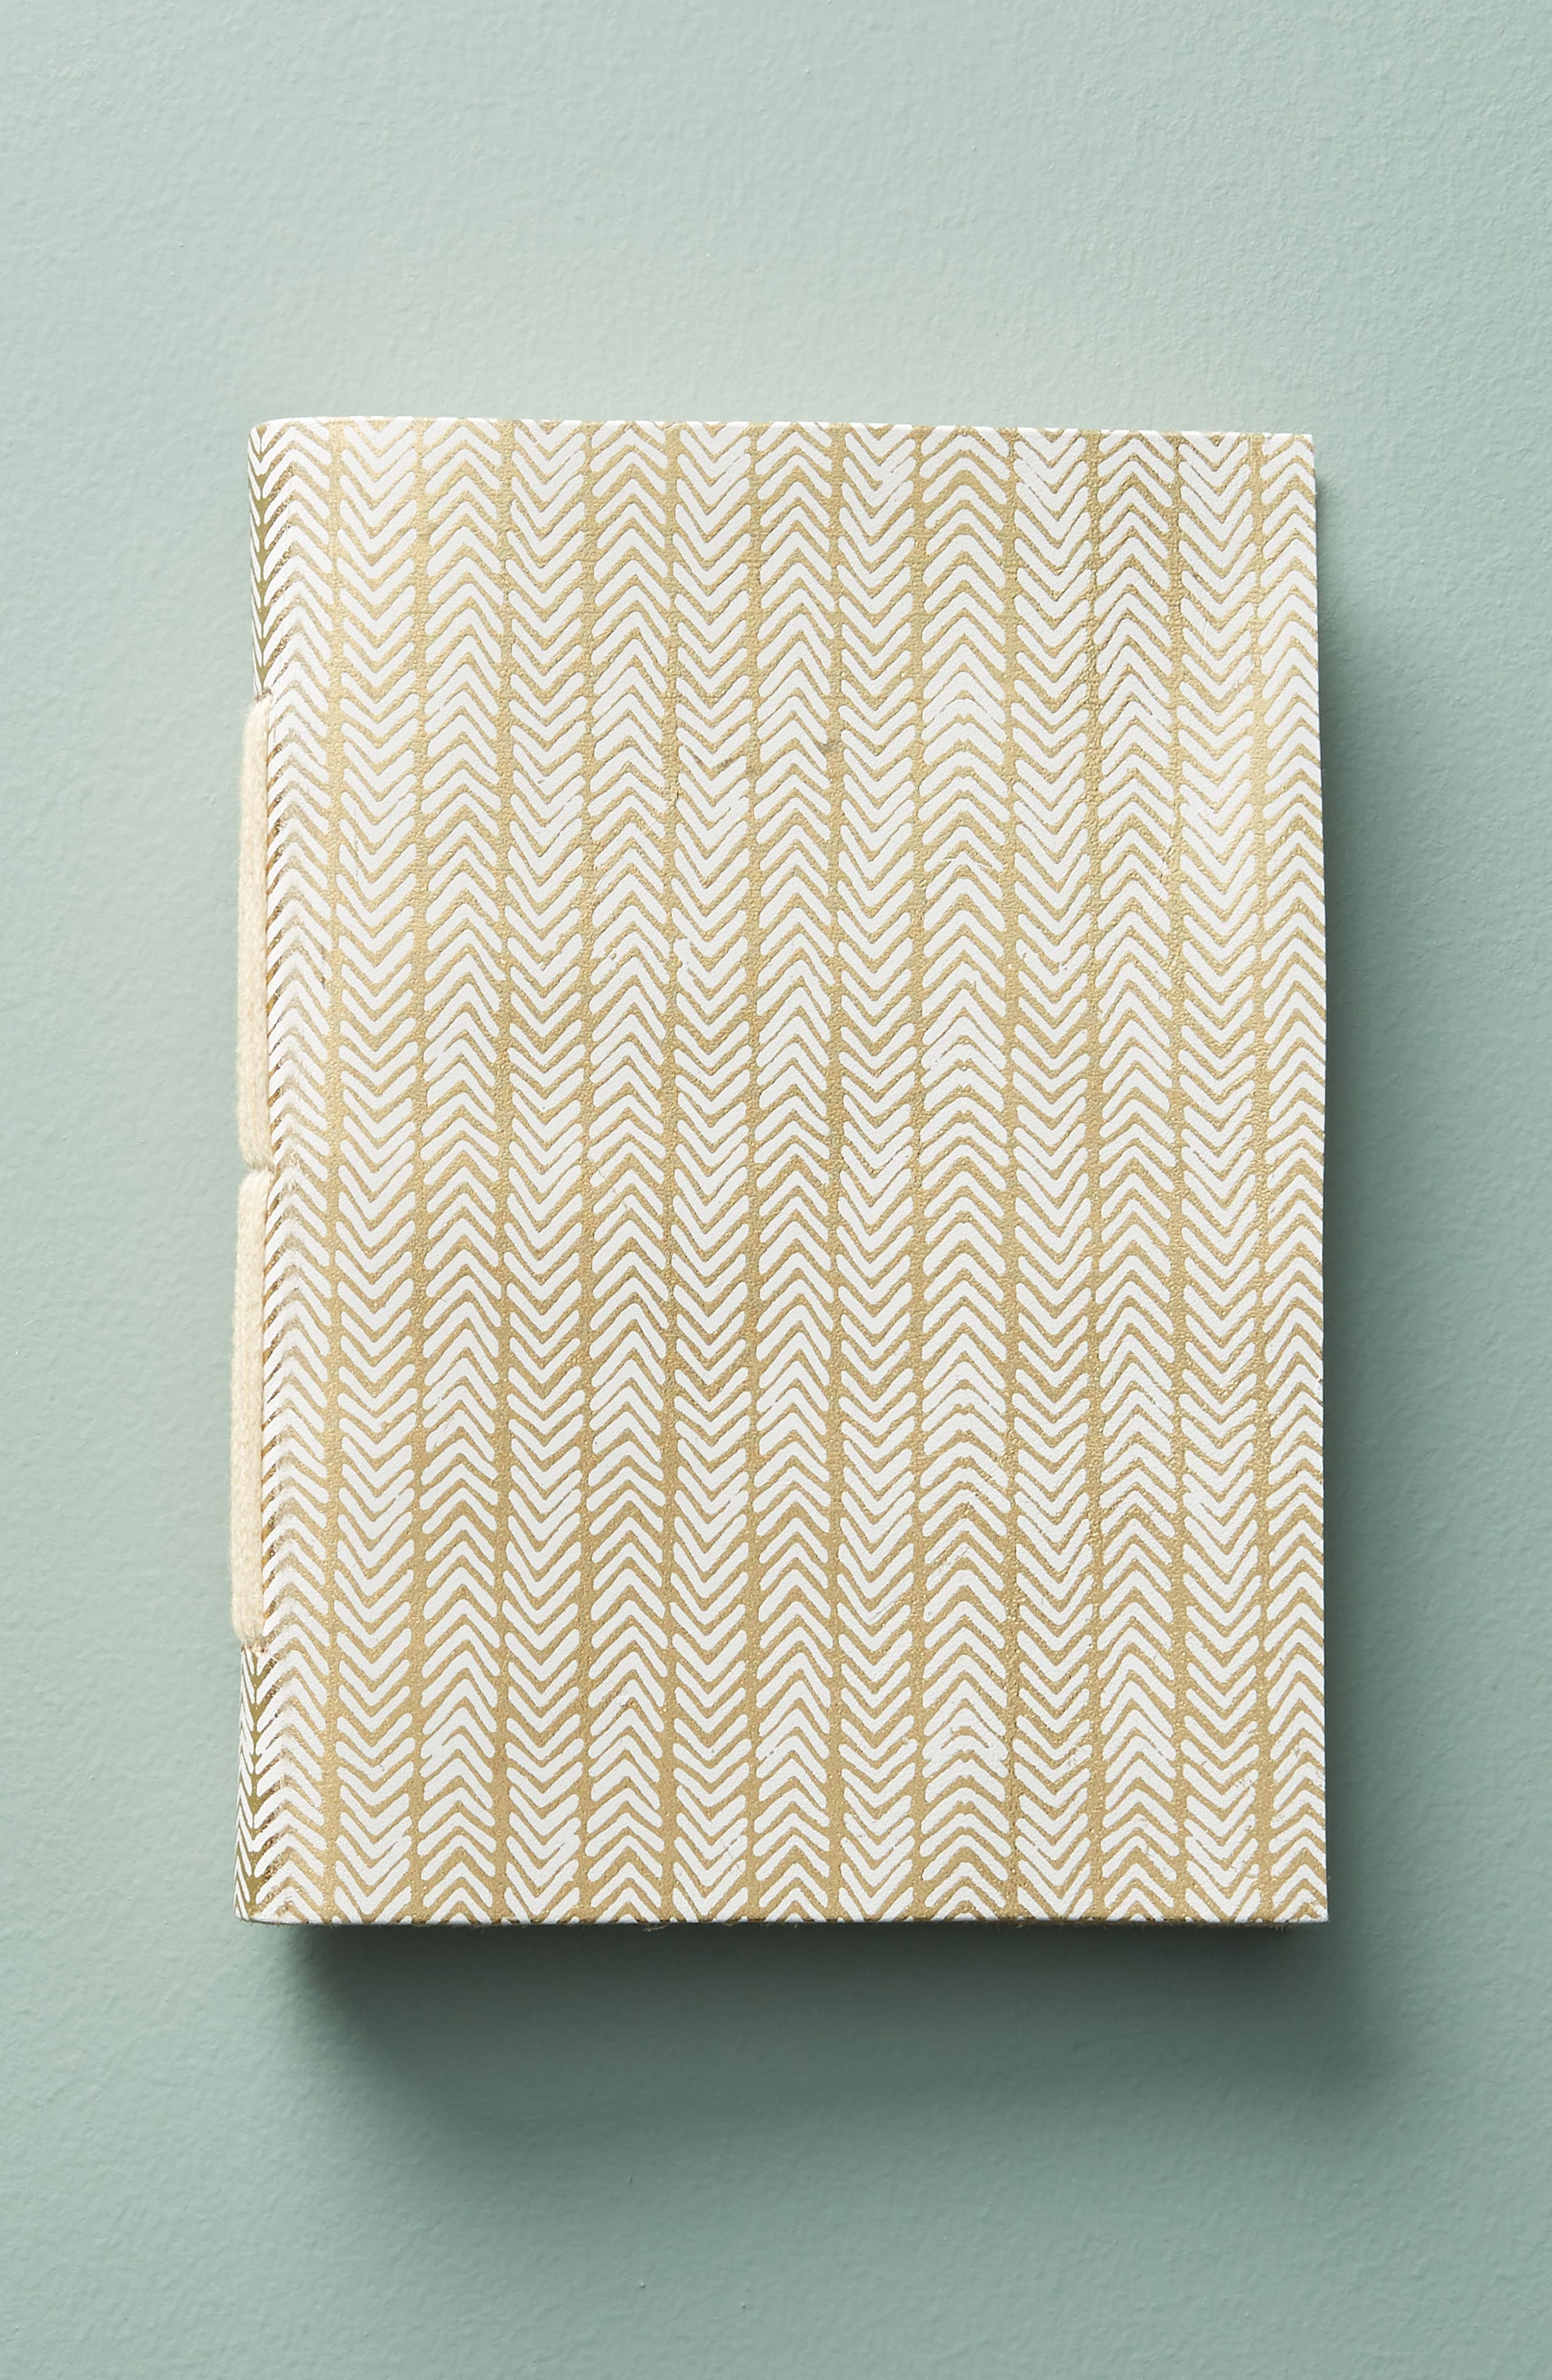 Gilded Leather Journal,                         Main,                         color, 710